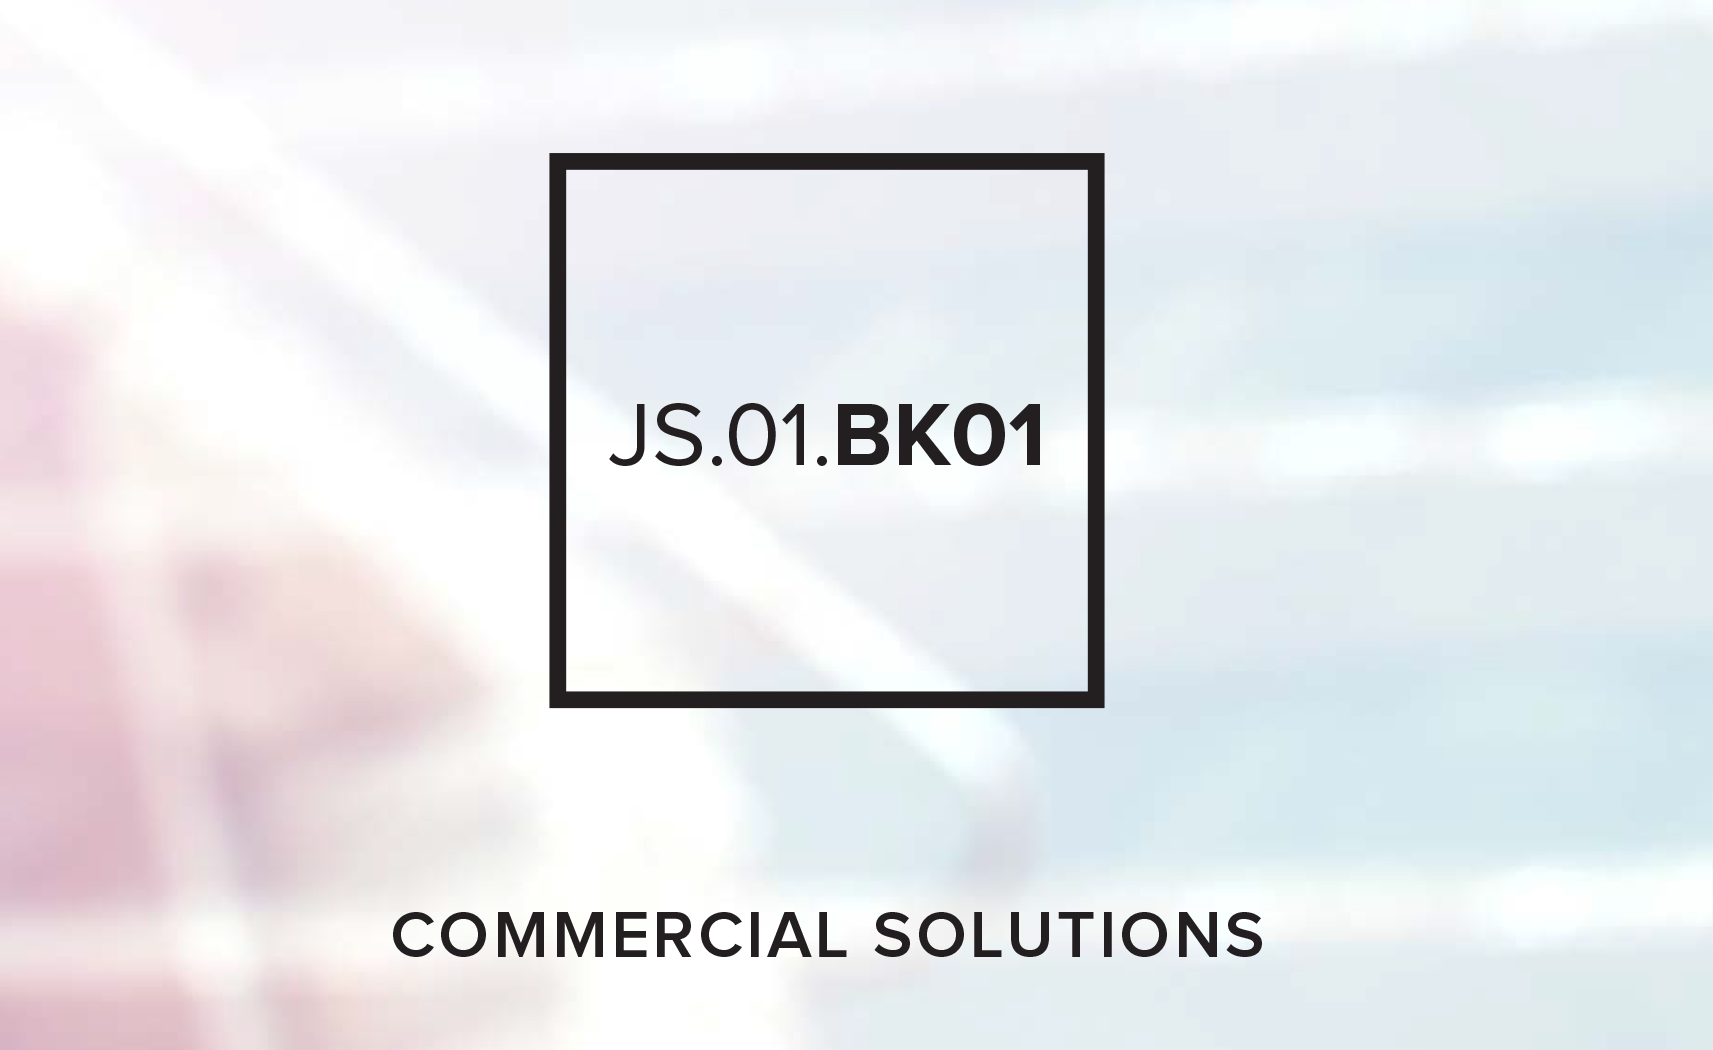 Johnson Suisse Commercial Solutions